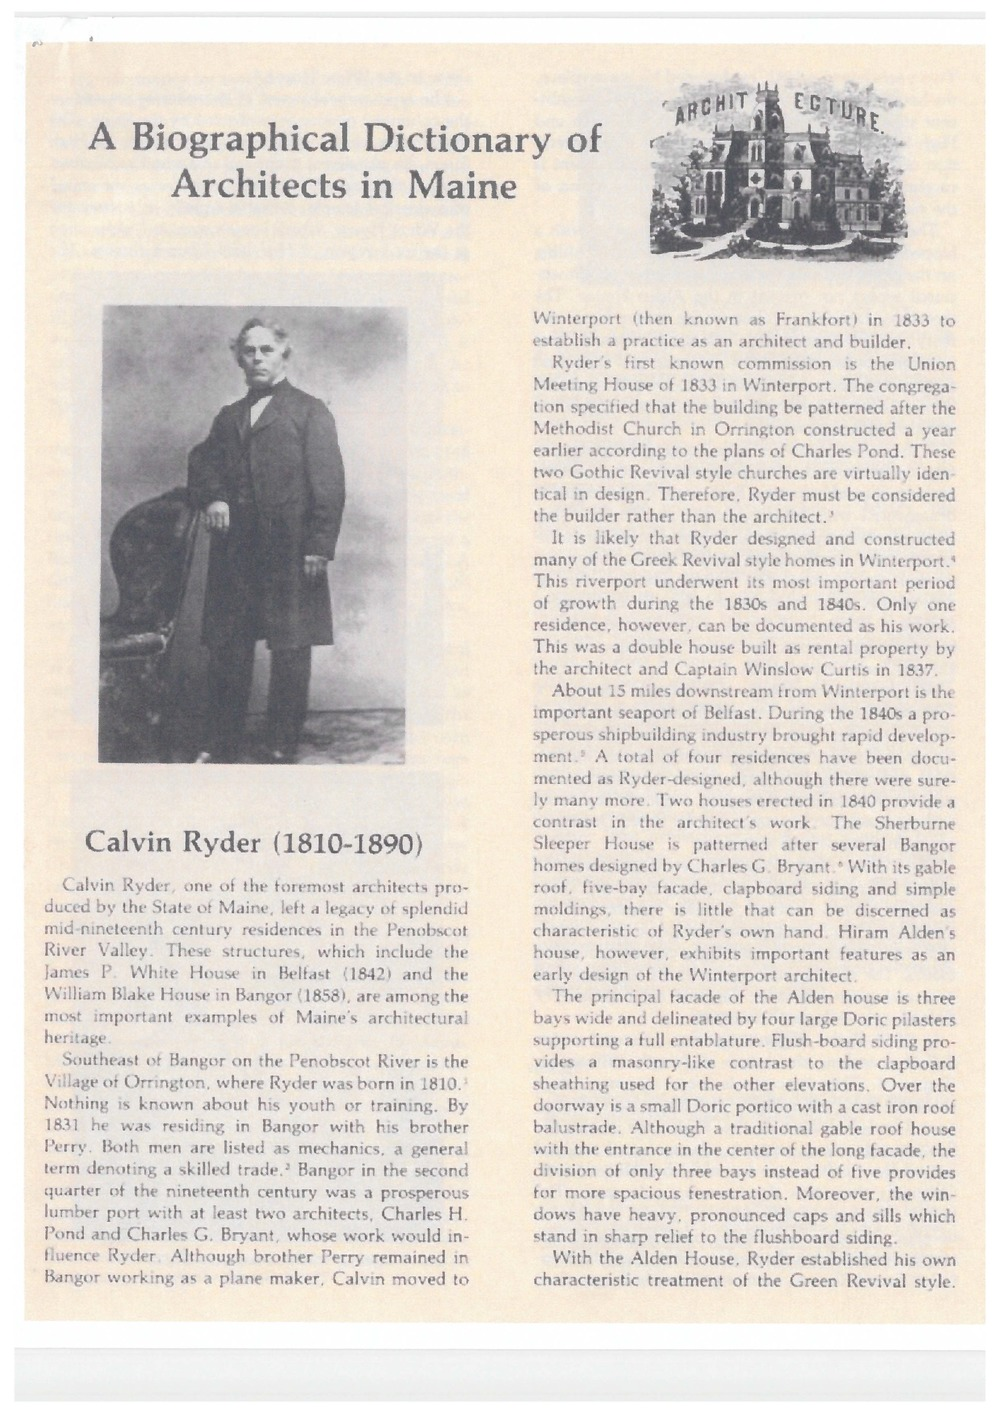 Biography of Calvin Ryder, the original architect of 6 Union Park.